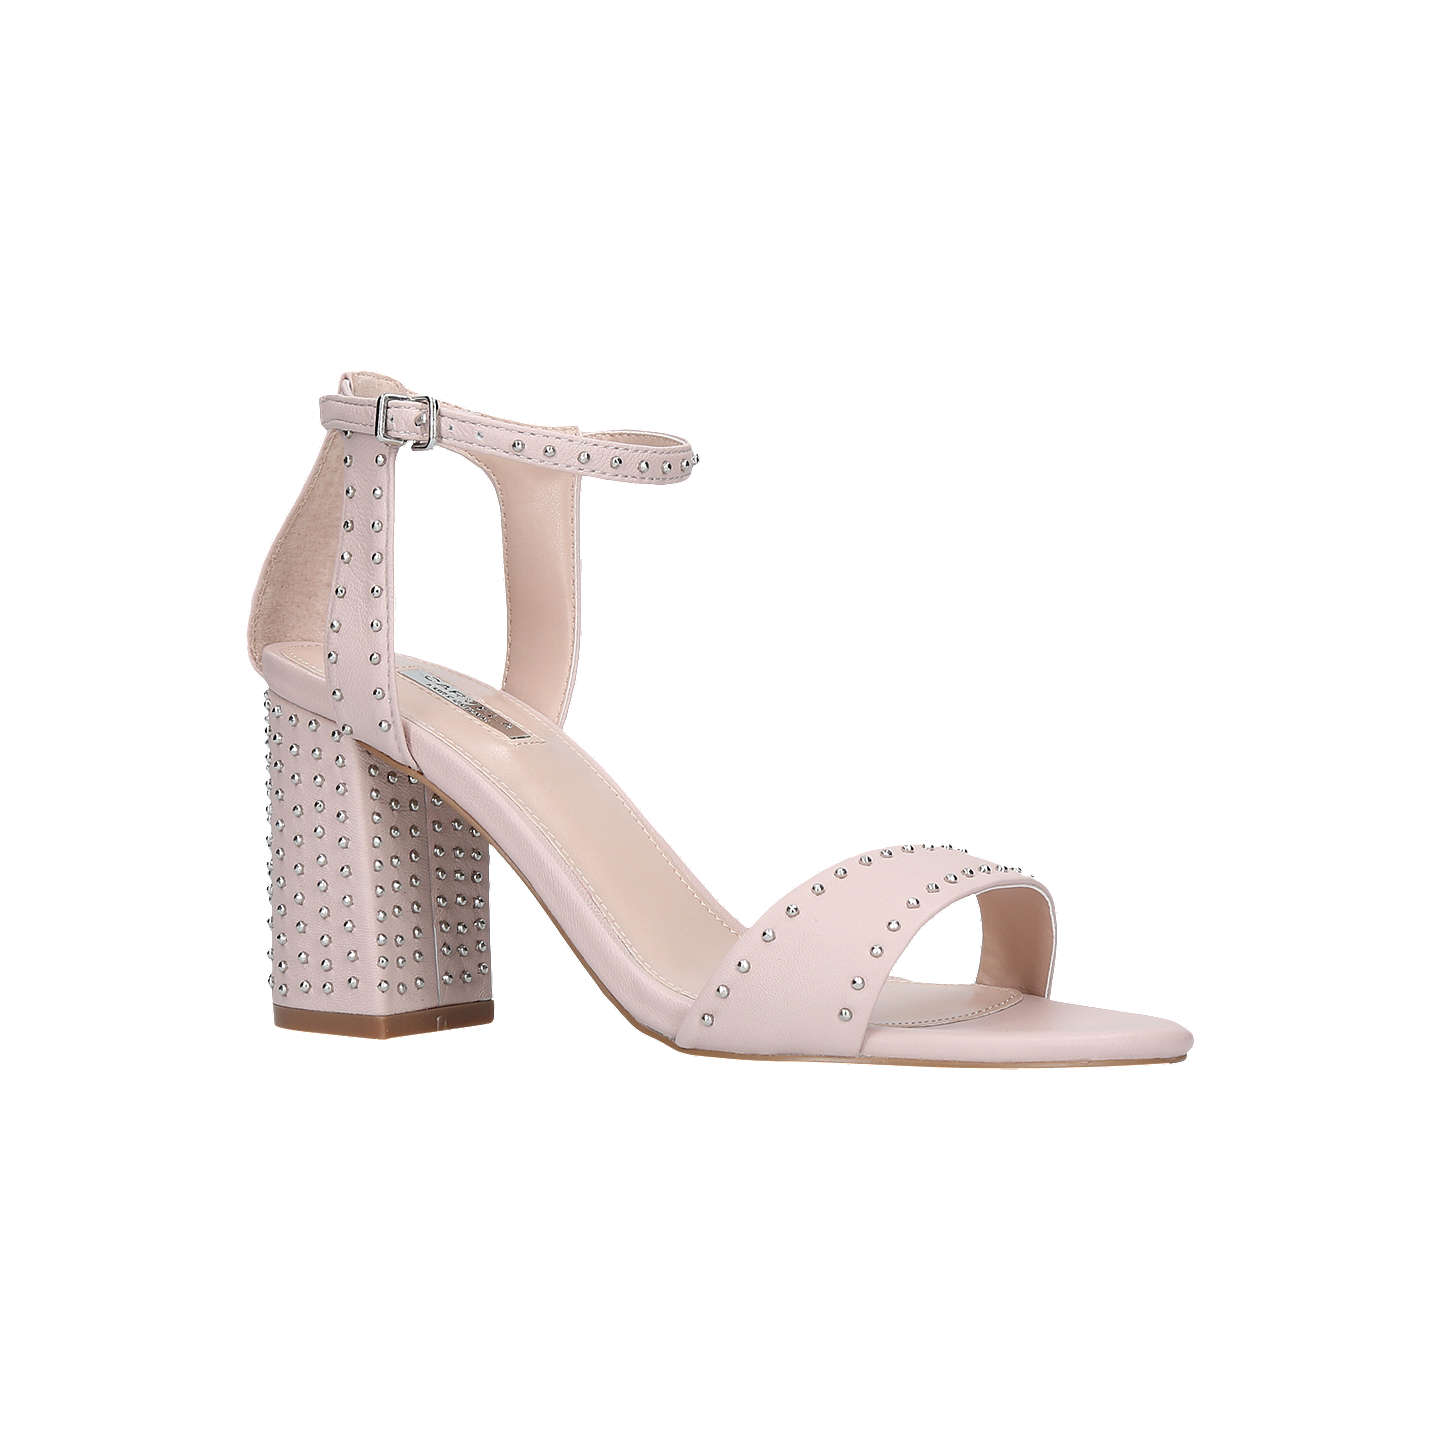 CARVELA Gogo leather block heel sandals Nude - Z9252